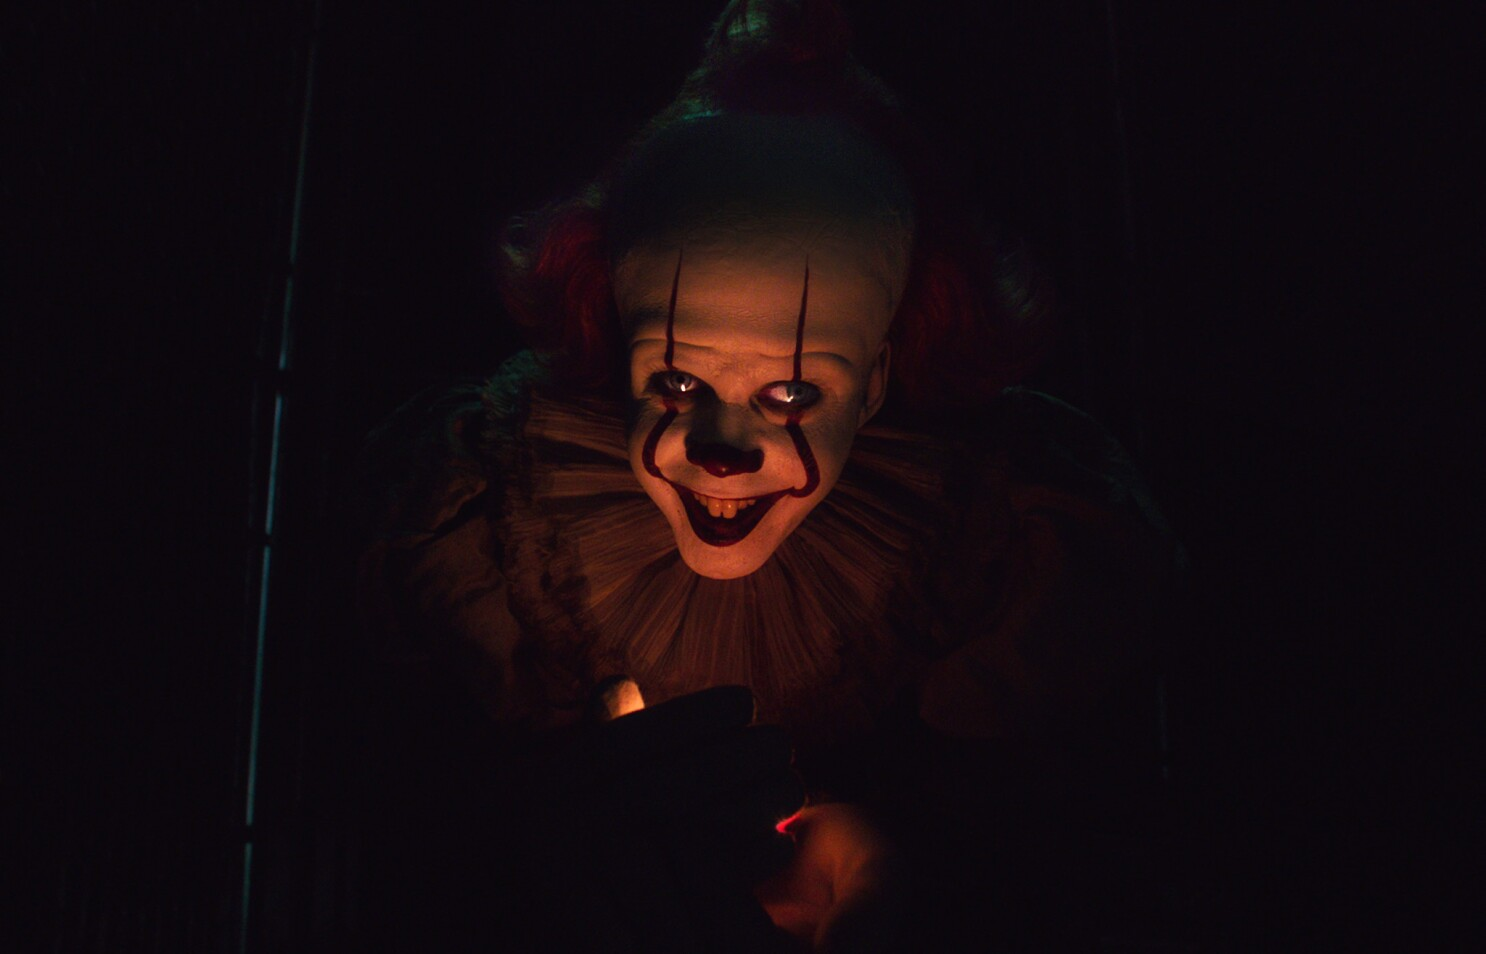 It: Chapter Two' scares up $91 million with debut - The San